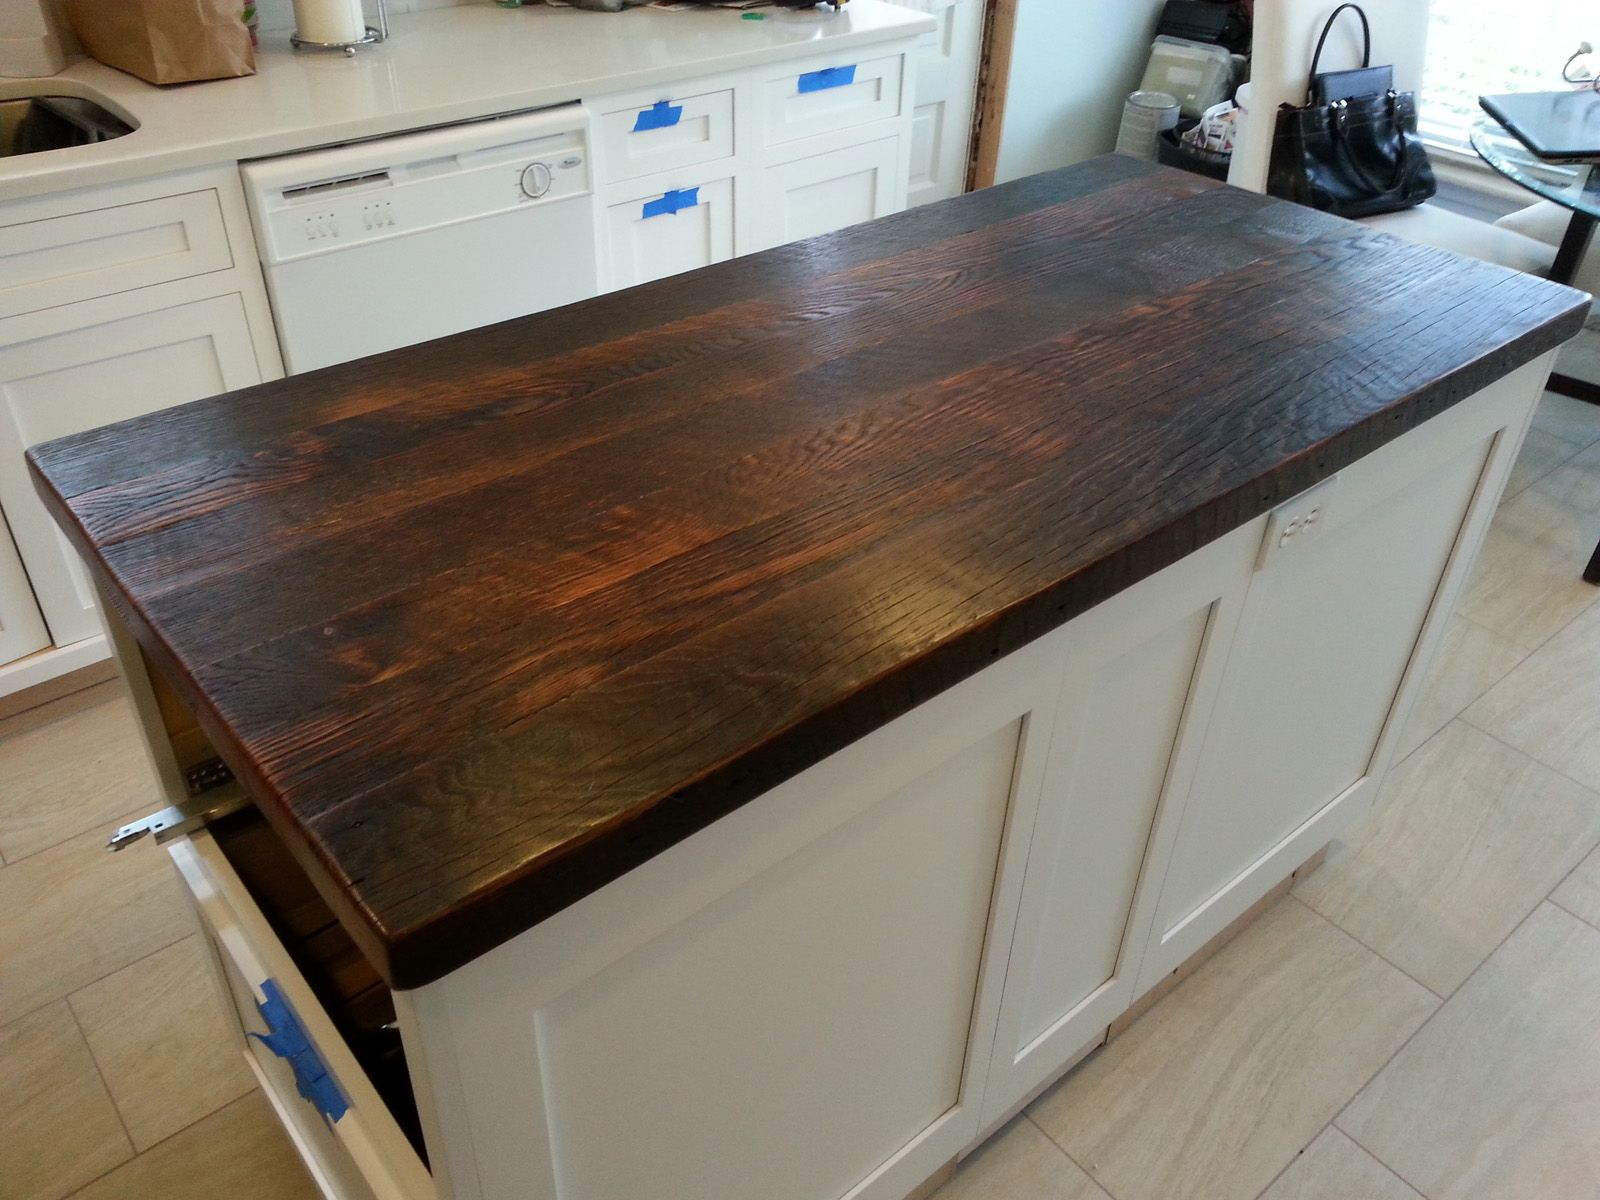 Reclaimed Wood Countertop Dark Walnut I want to use my attic floor boards and do this & Reclaimed Wood Countertop Dark Walnut I want to use my attic floor ...